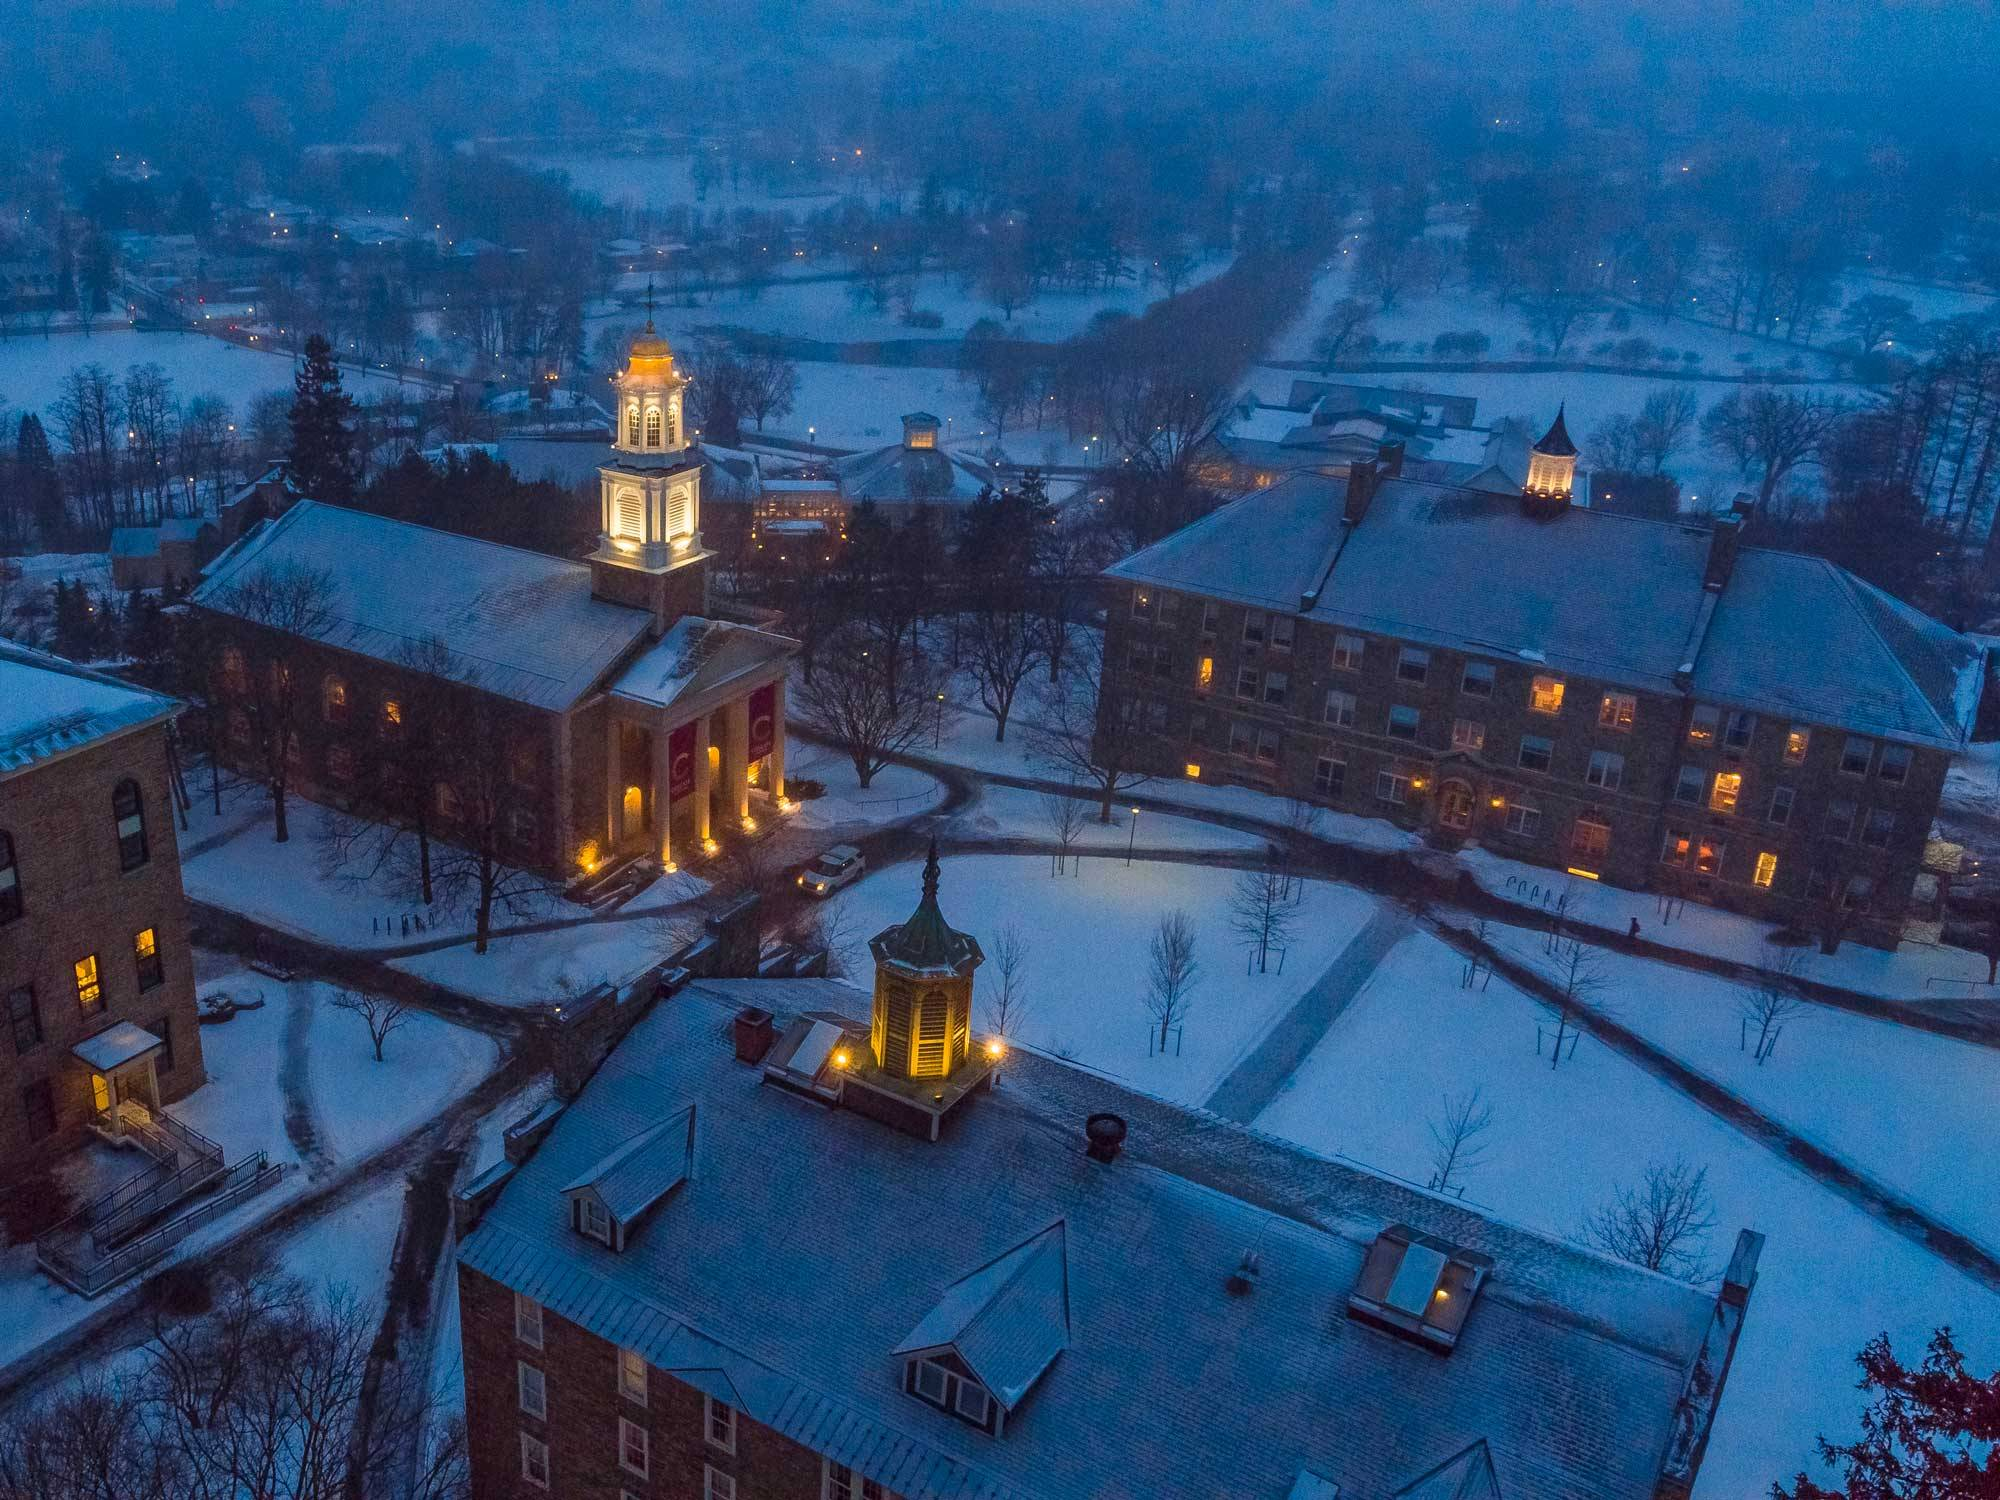 Campus buildings at dusk with snow on ground